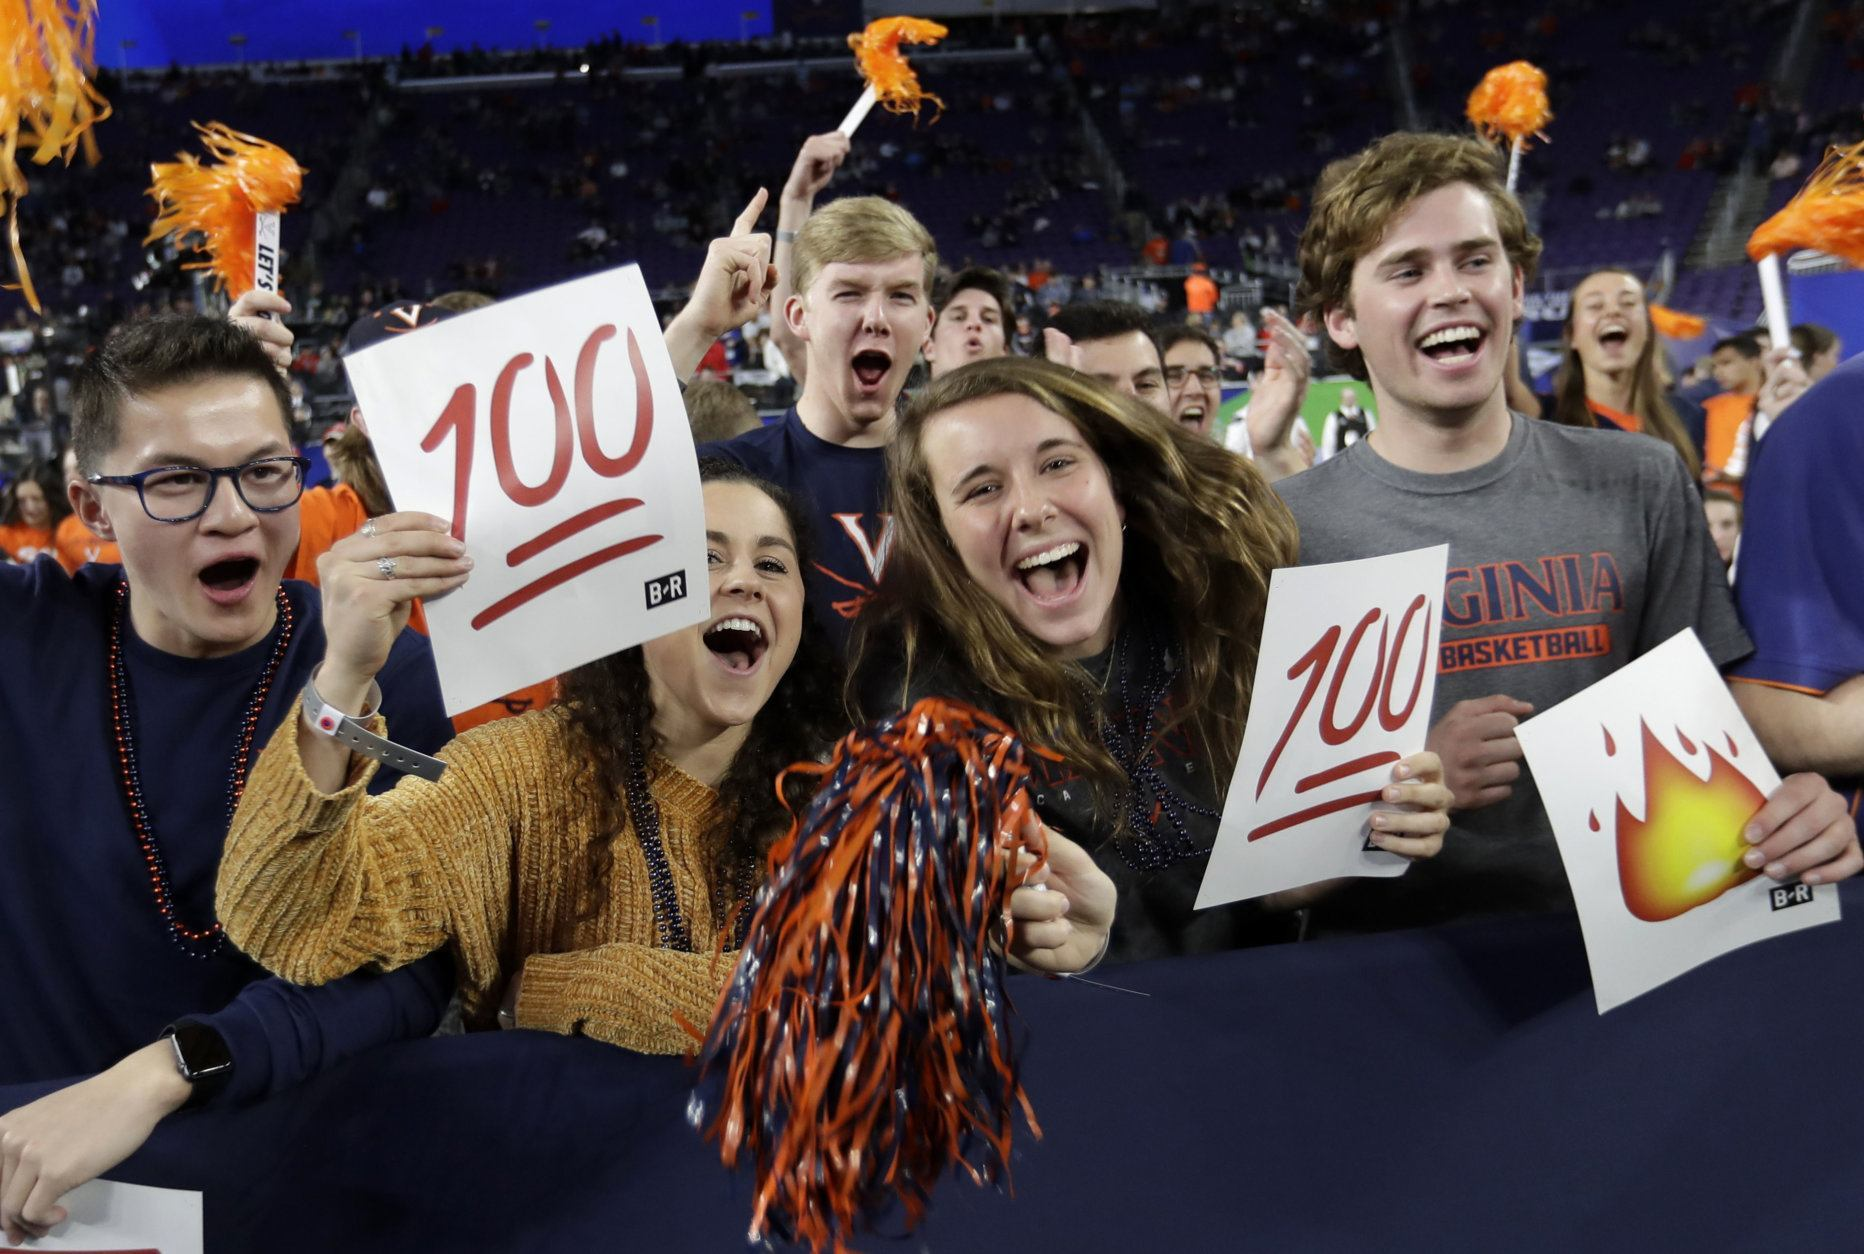 Virginia fans cheer before a semifinal round game against Auburn at the Final Four NCAA college basketball tournament, Saturday, April 6, 2019, in Minneapolis. (AP Photo/David J. Phillip)